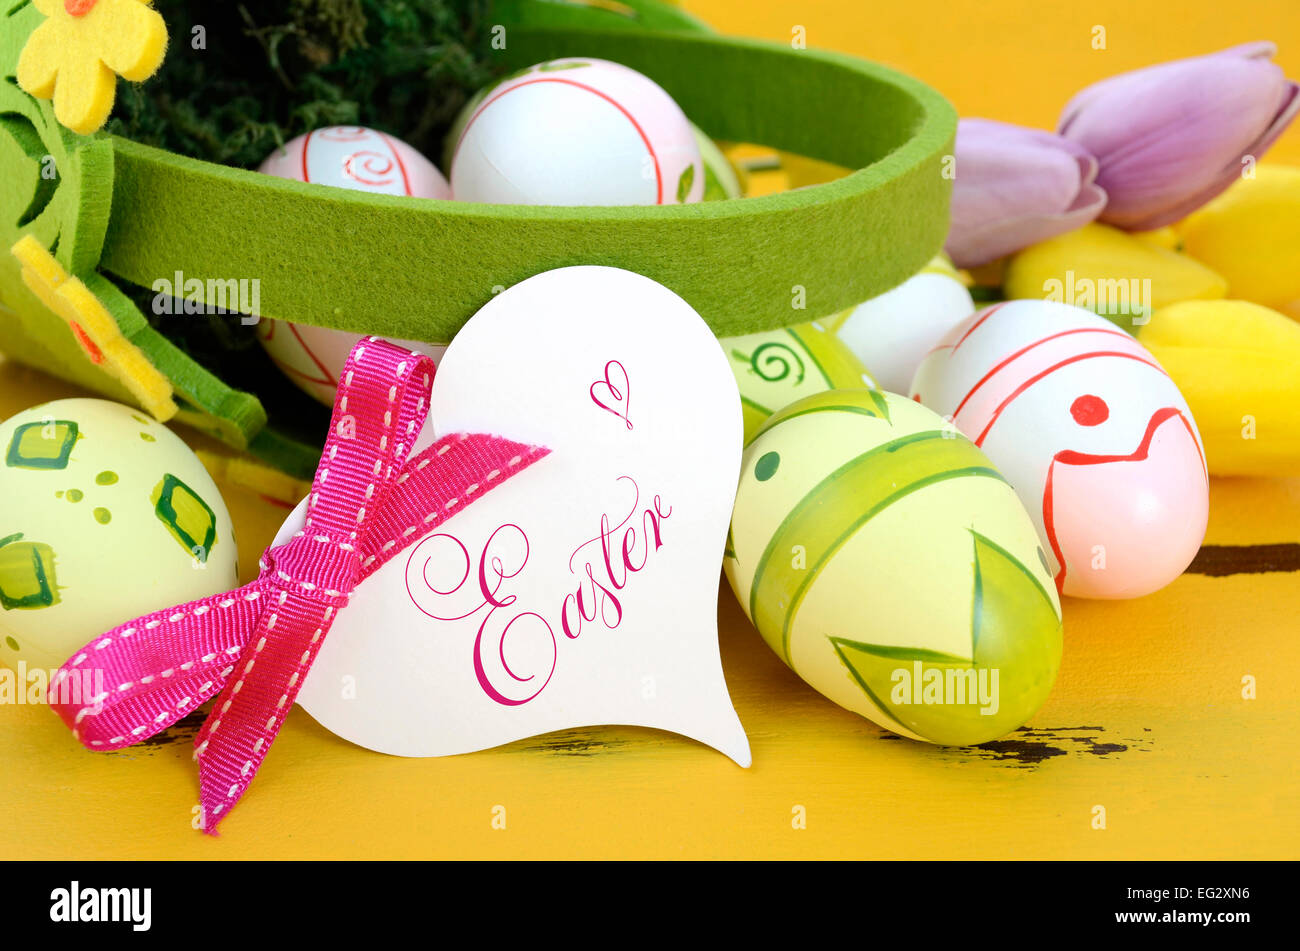 Happy Easter Green And Yellow Felt Basket Of Pink White Eggs On Rustic Vintage Wood Table